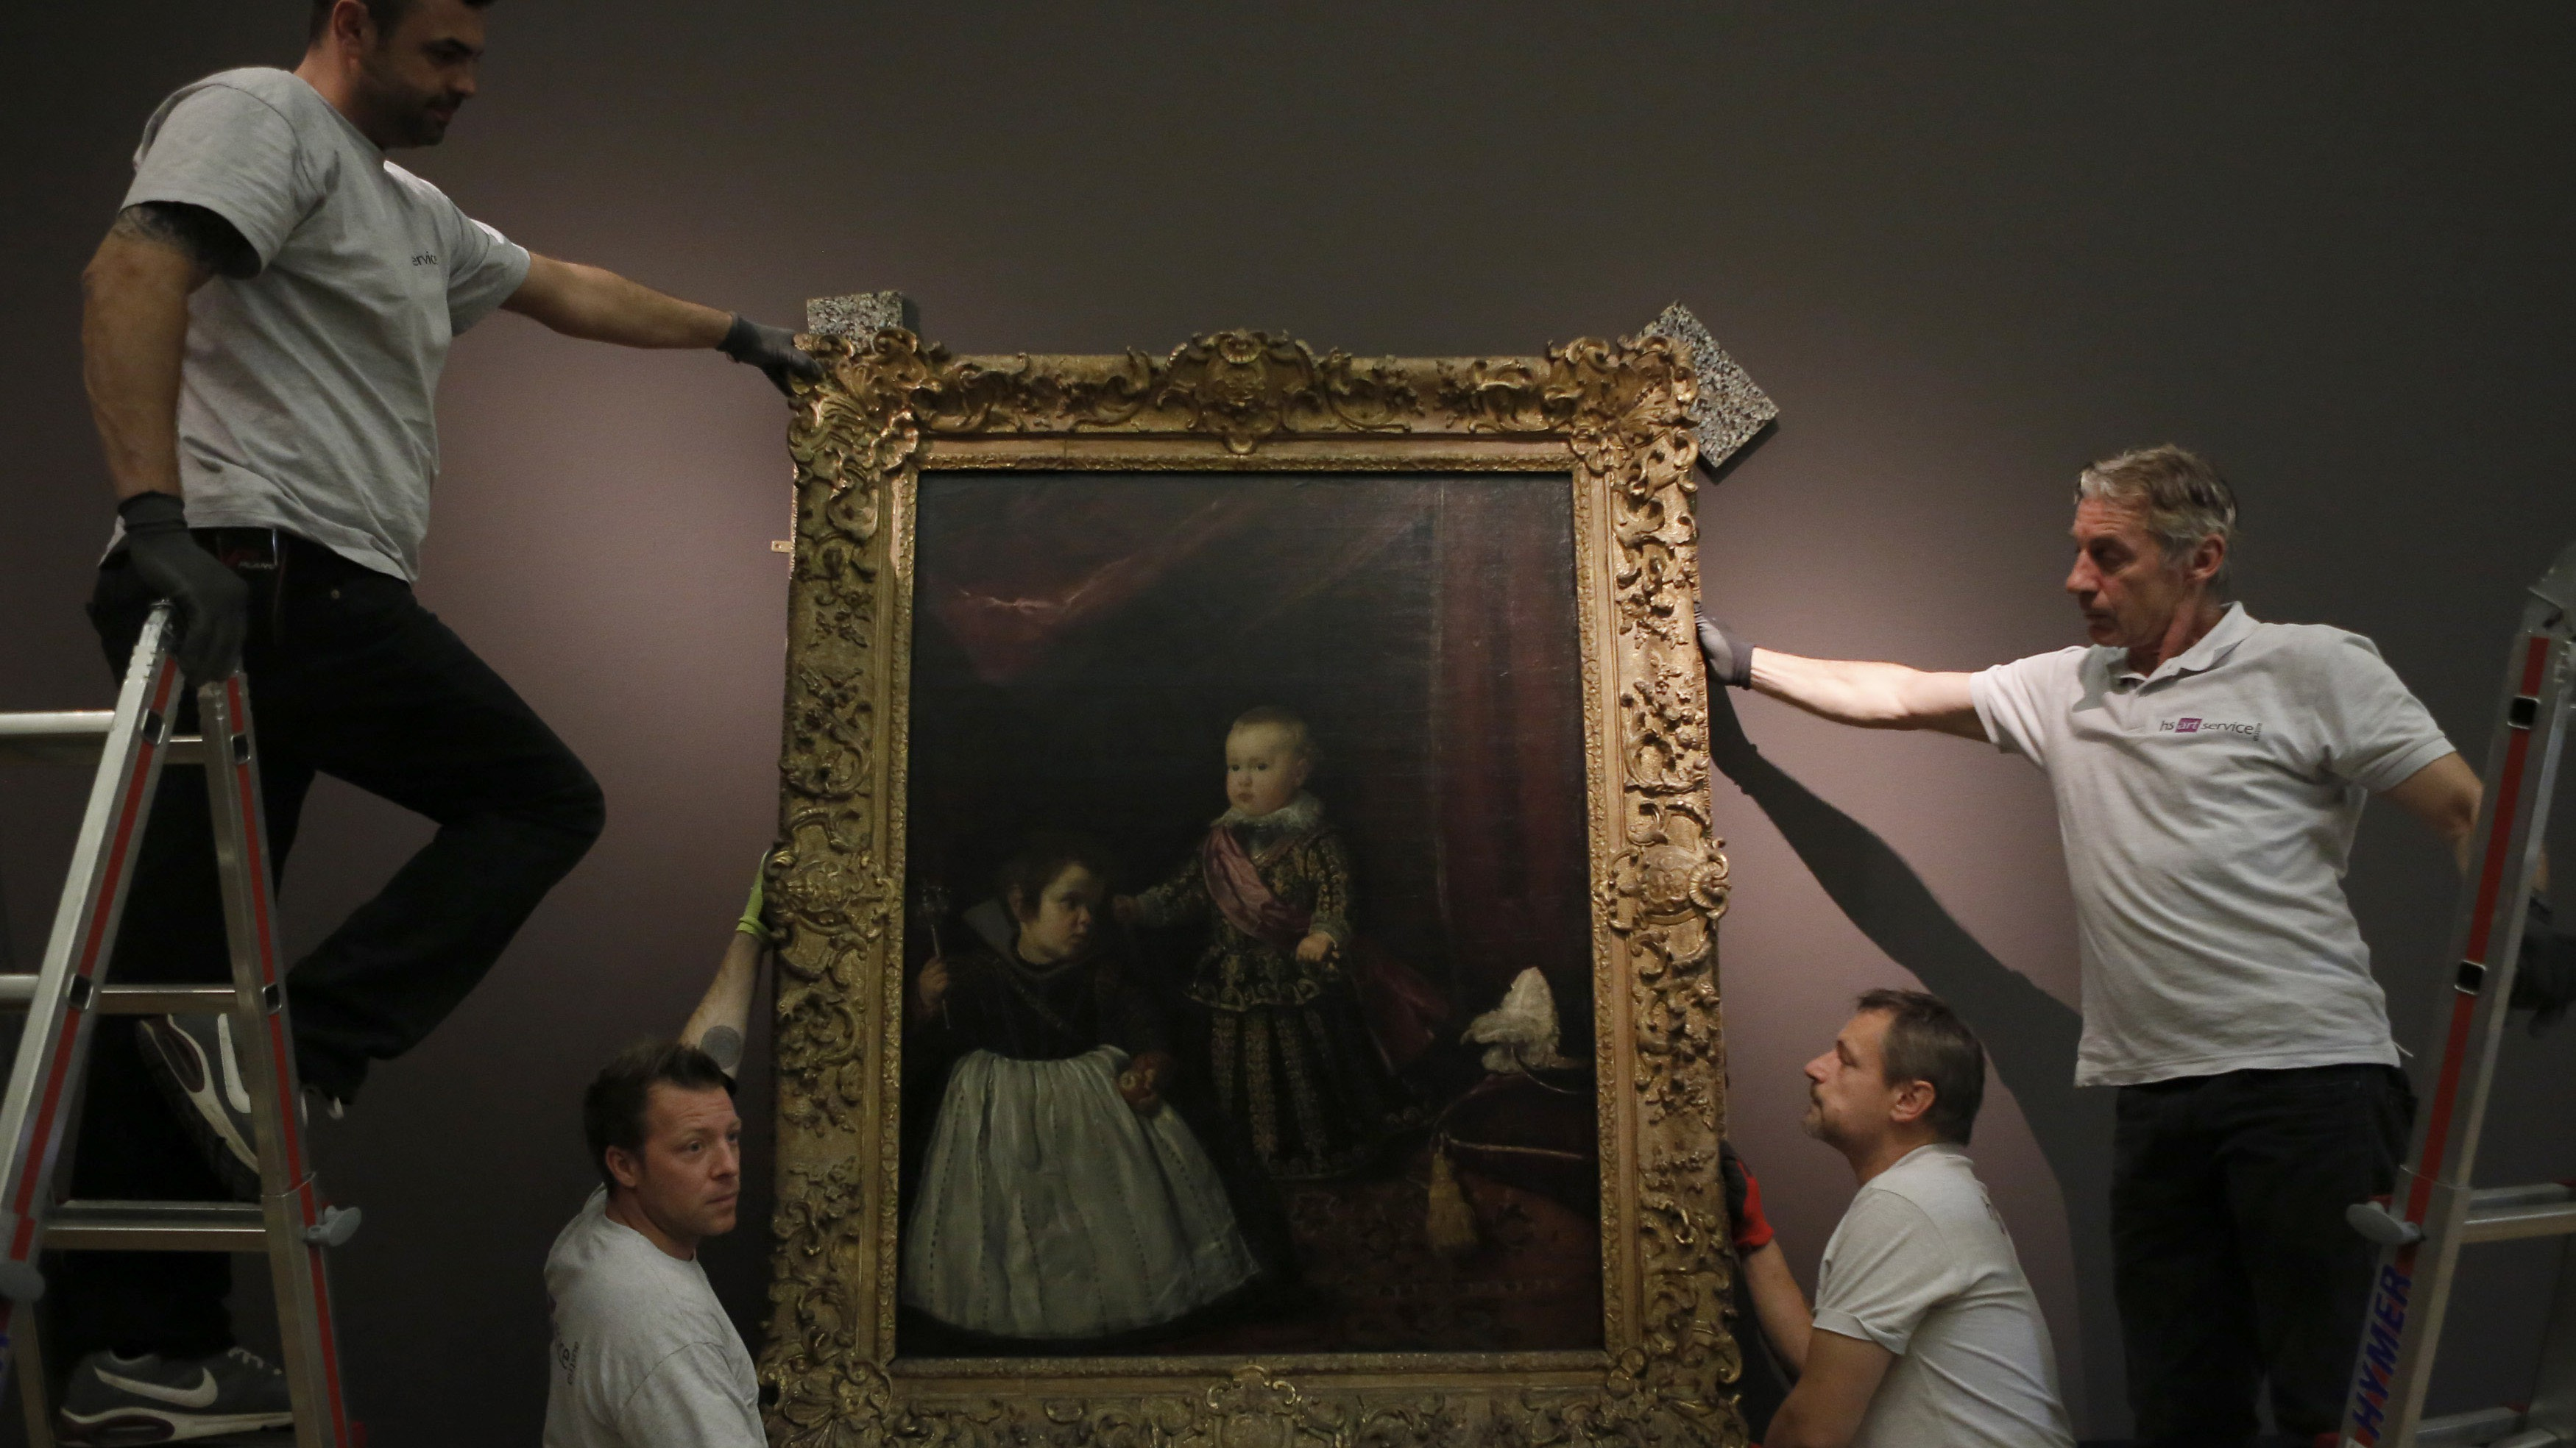 """Employees of Vienna's Art History Museum (Kunsthistorisches Museum Wien) adjust the painting """"Infant Balthasar Charles with a Dwarf"""" by Spanish artist Diego Velazquez, prior to the opening of the major exhibition """"Velazquez"""" in Vienna October 22, 2014. The exhibiton runs from October 28, 2014 to February 15, 2015 in the museum."""